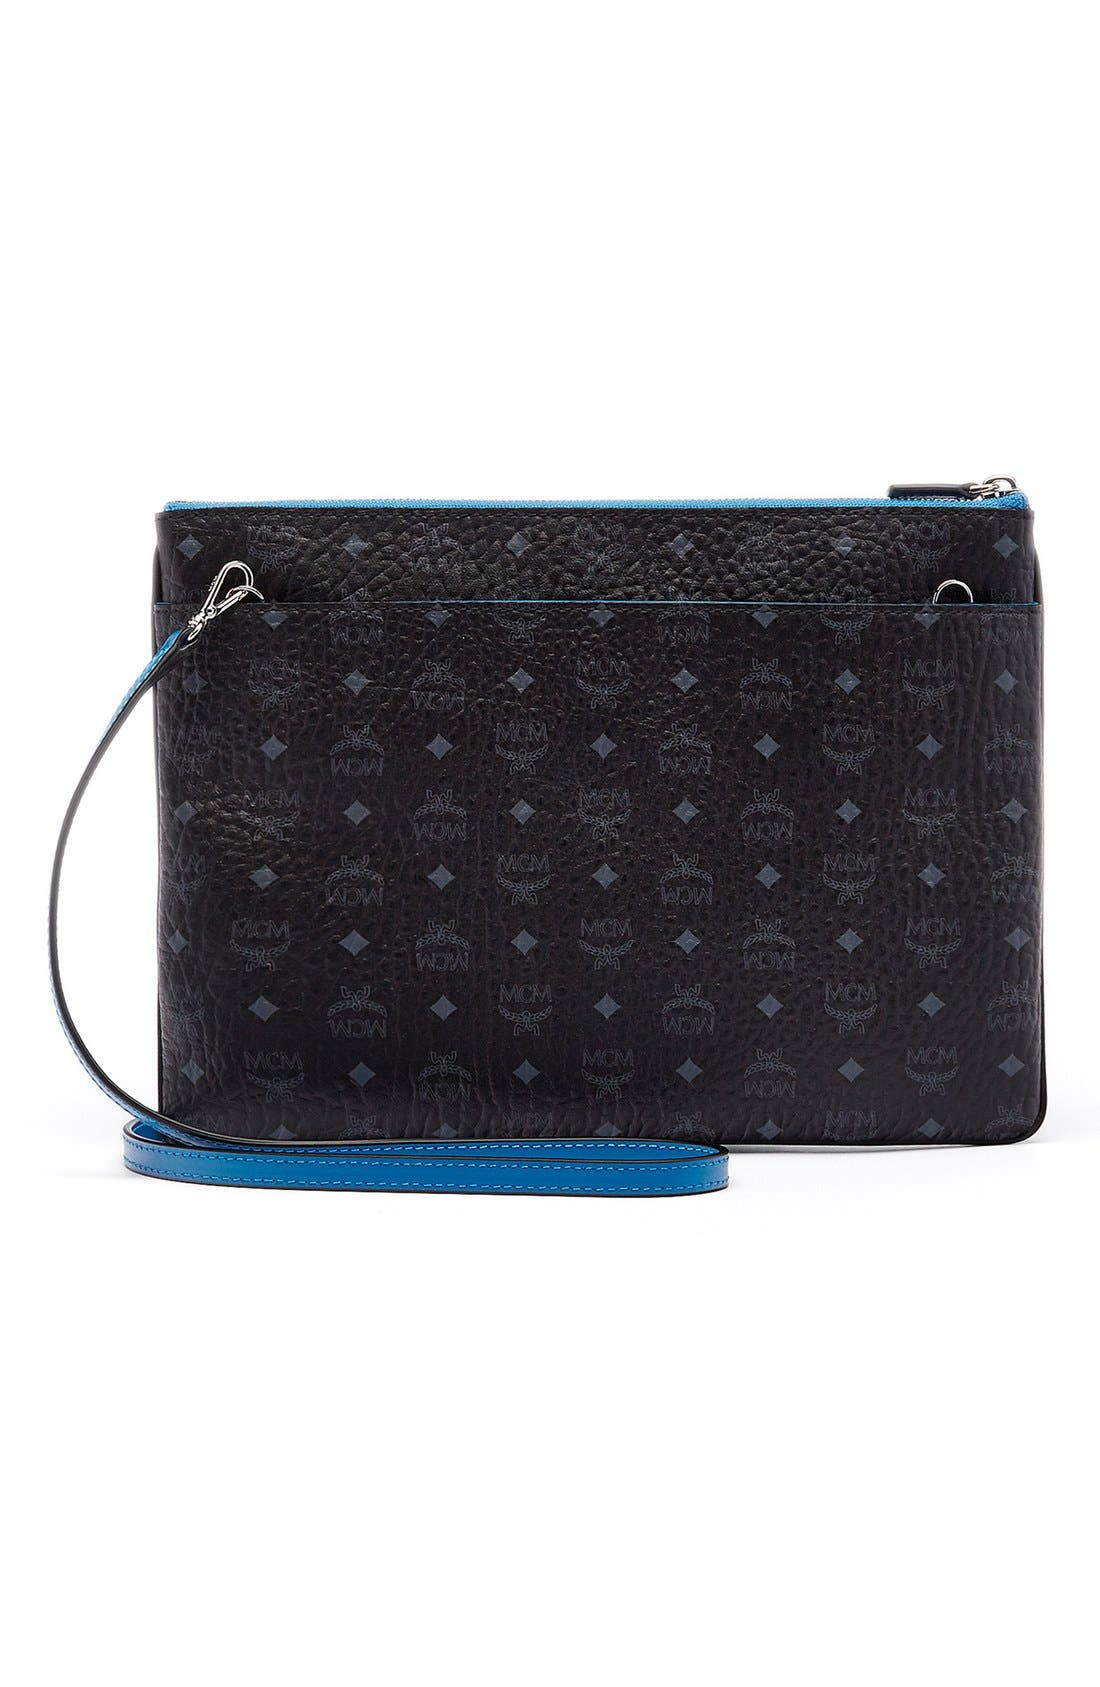 Alternate Image 3  - MCM 'Heritage' Convertible Coated Canvas Zip Pouch